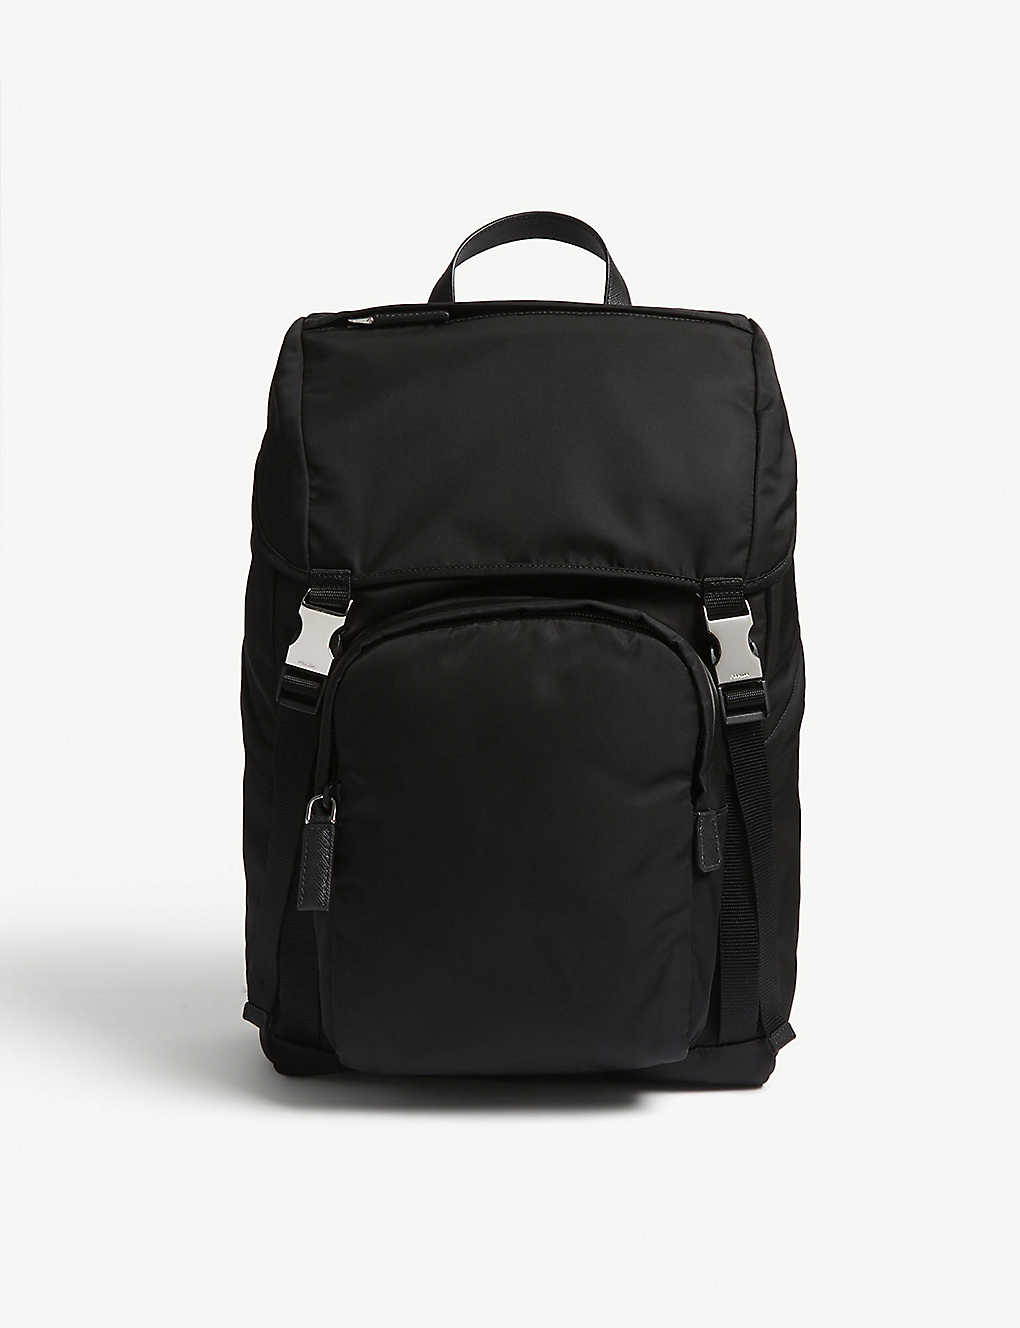 31703b519470d6 PRADA - Nylon technical backpack | Selfridges.com